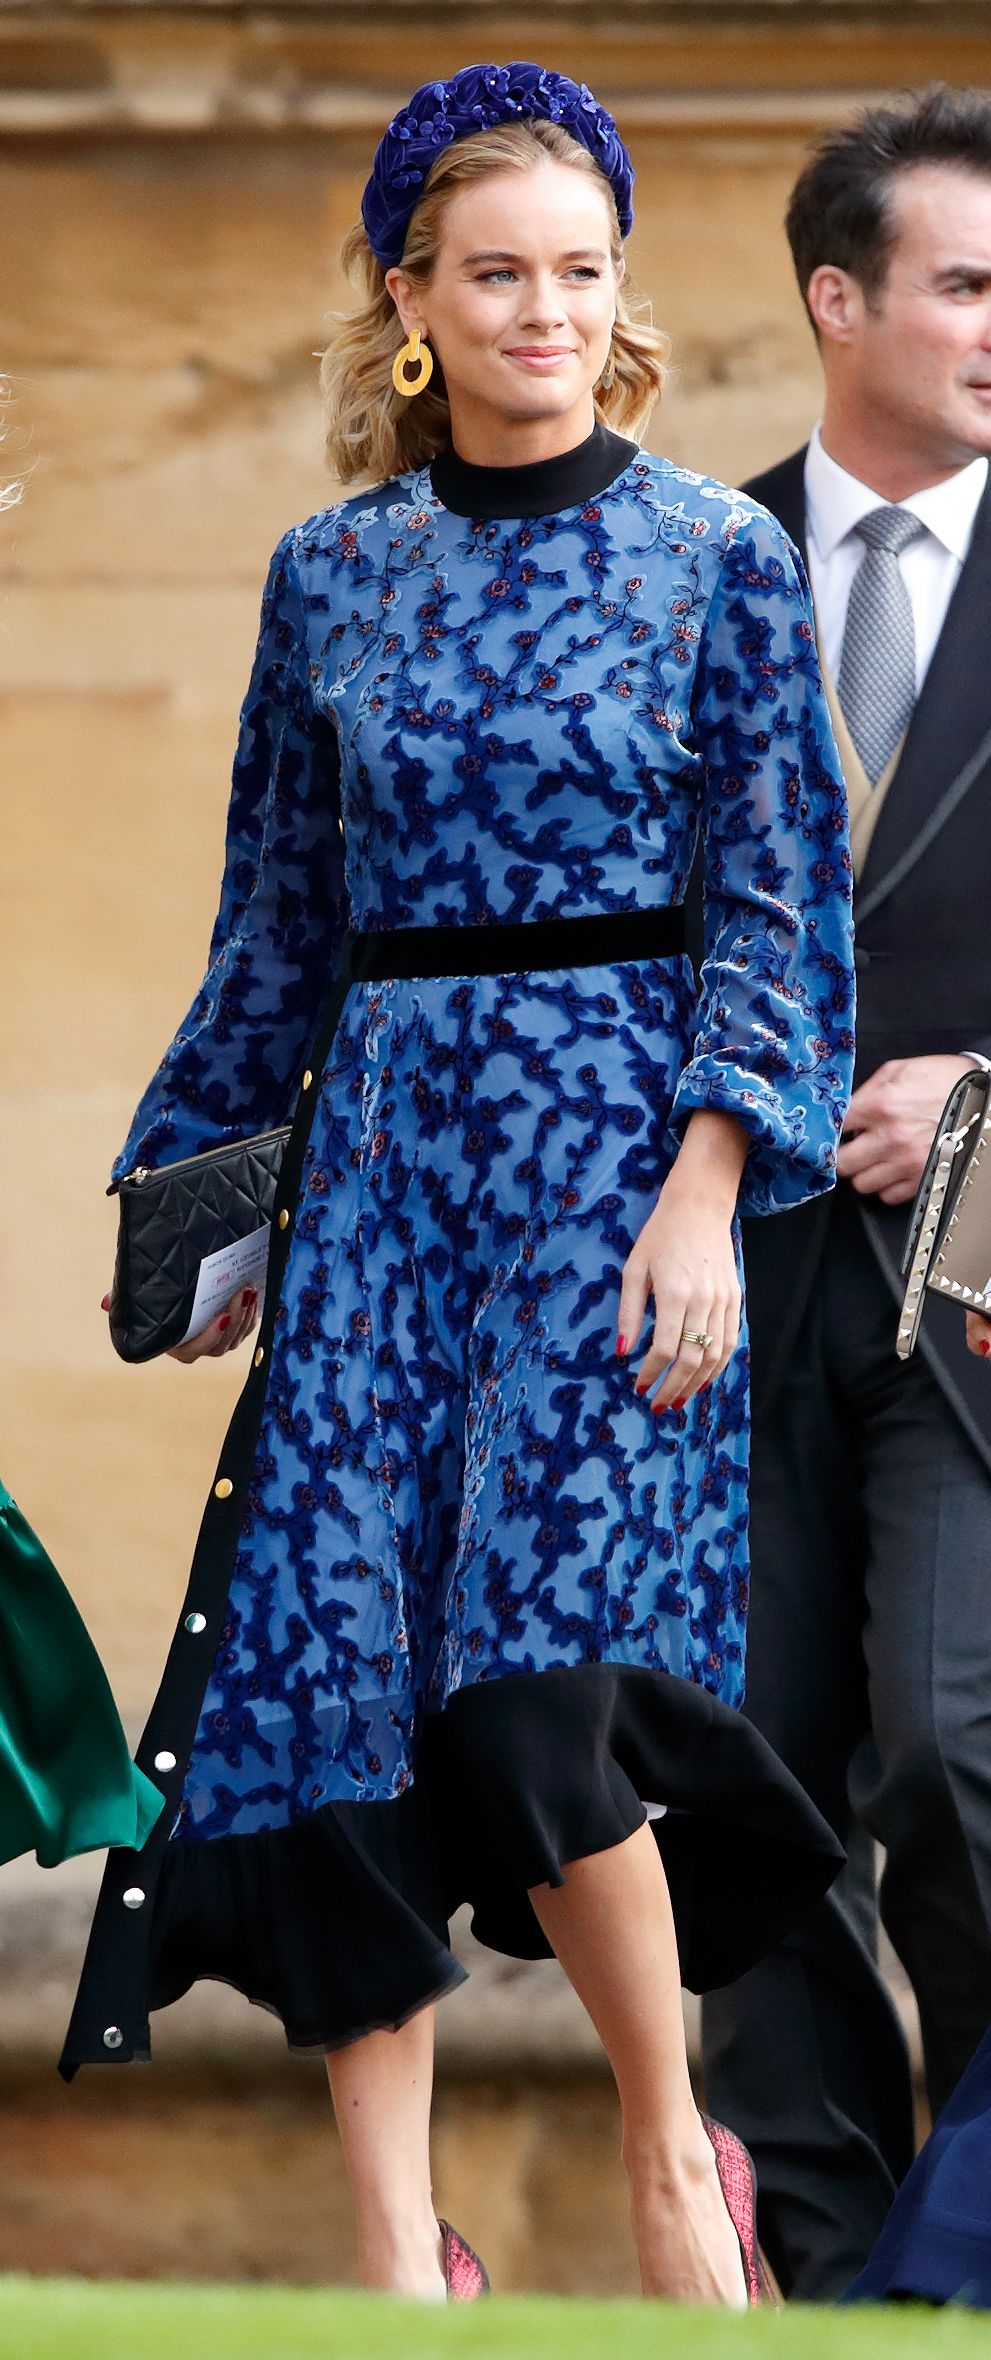 Prince Harry's ex was spotted taking a selfie in the background—but is it really her?!